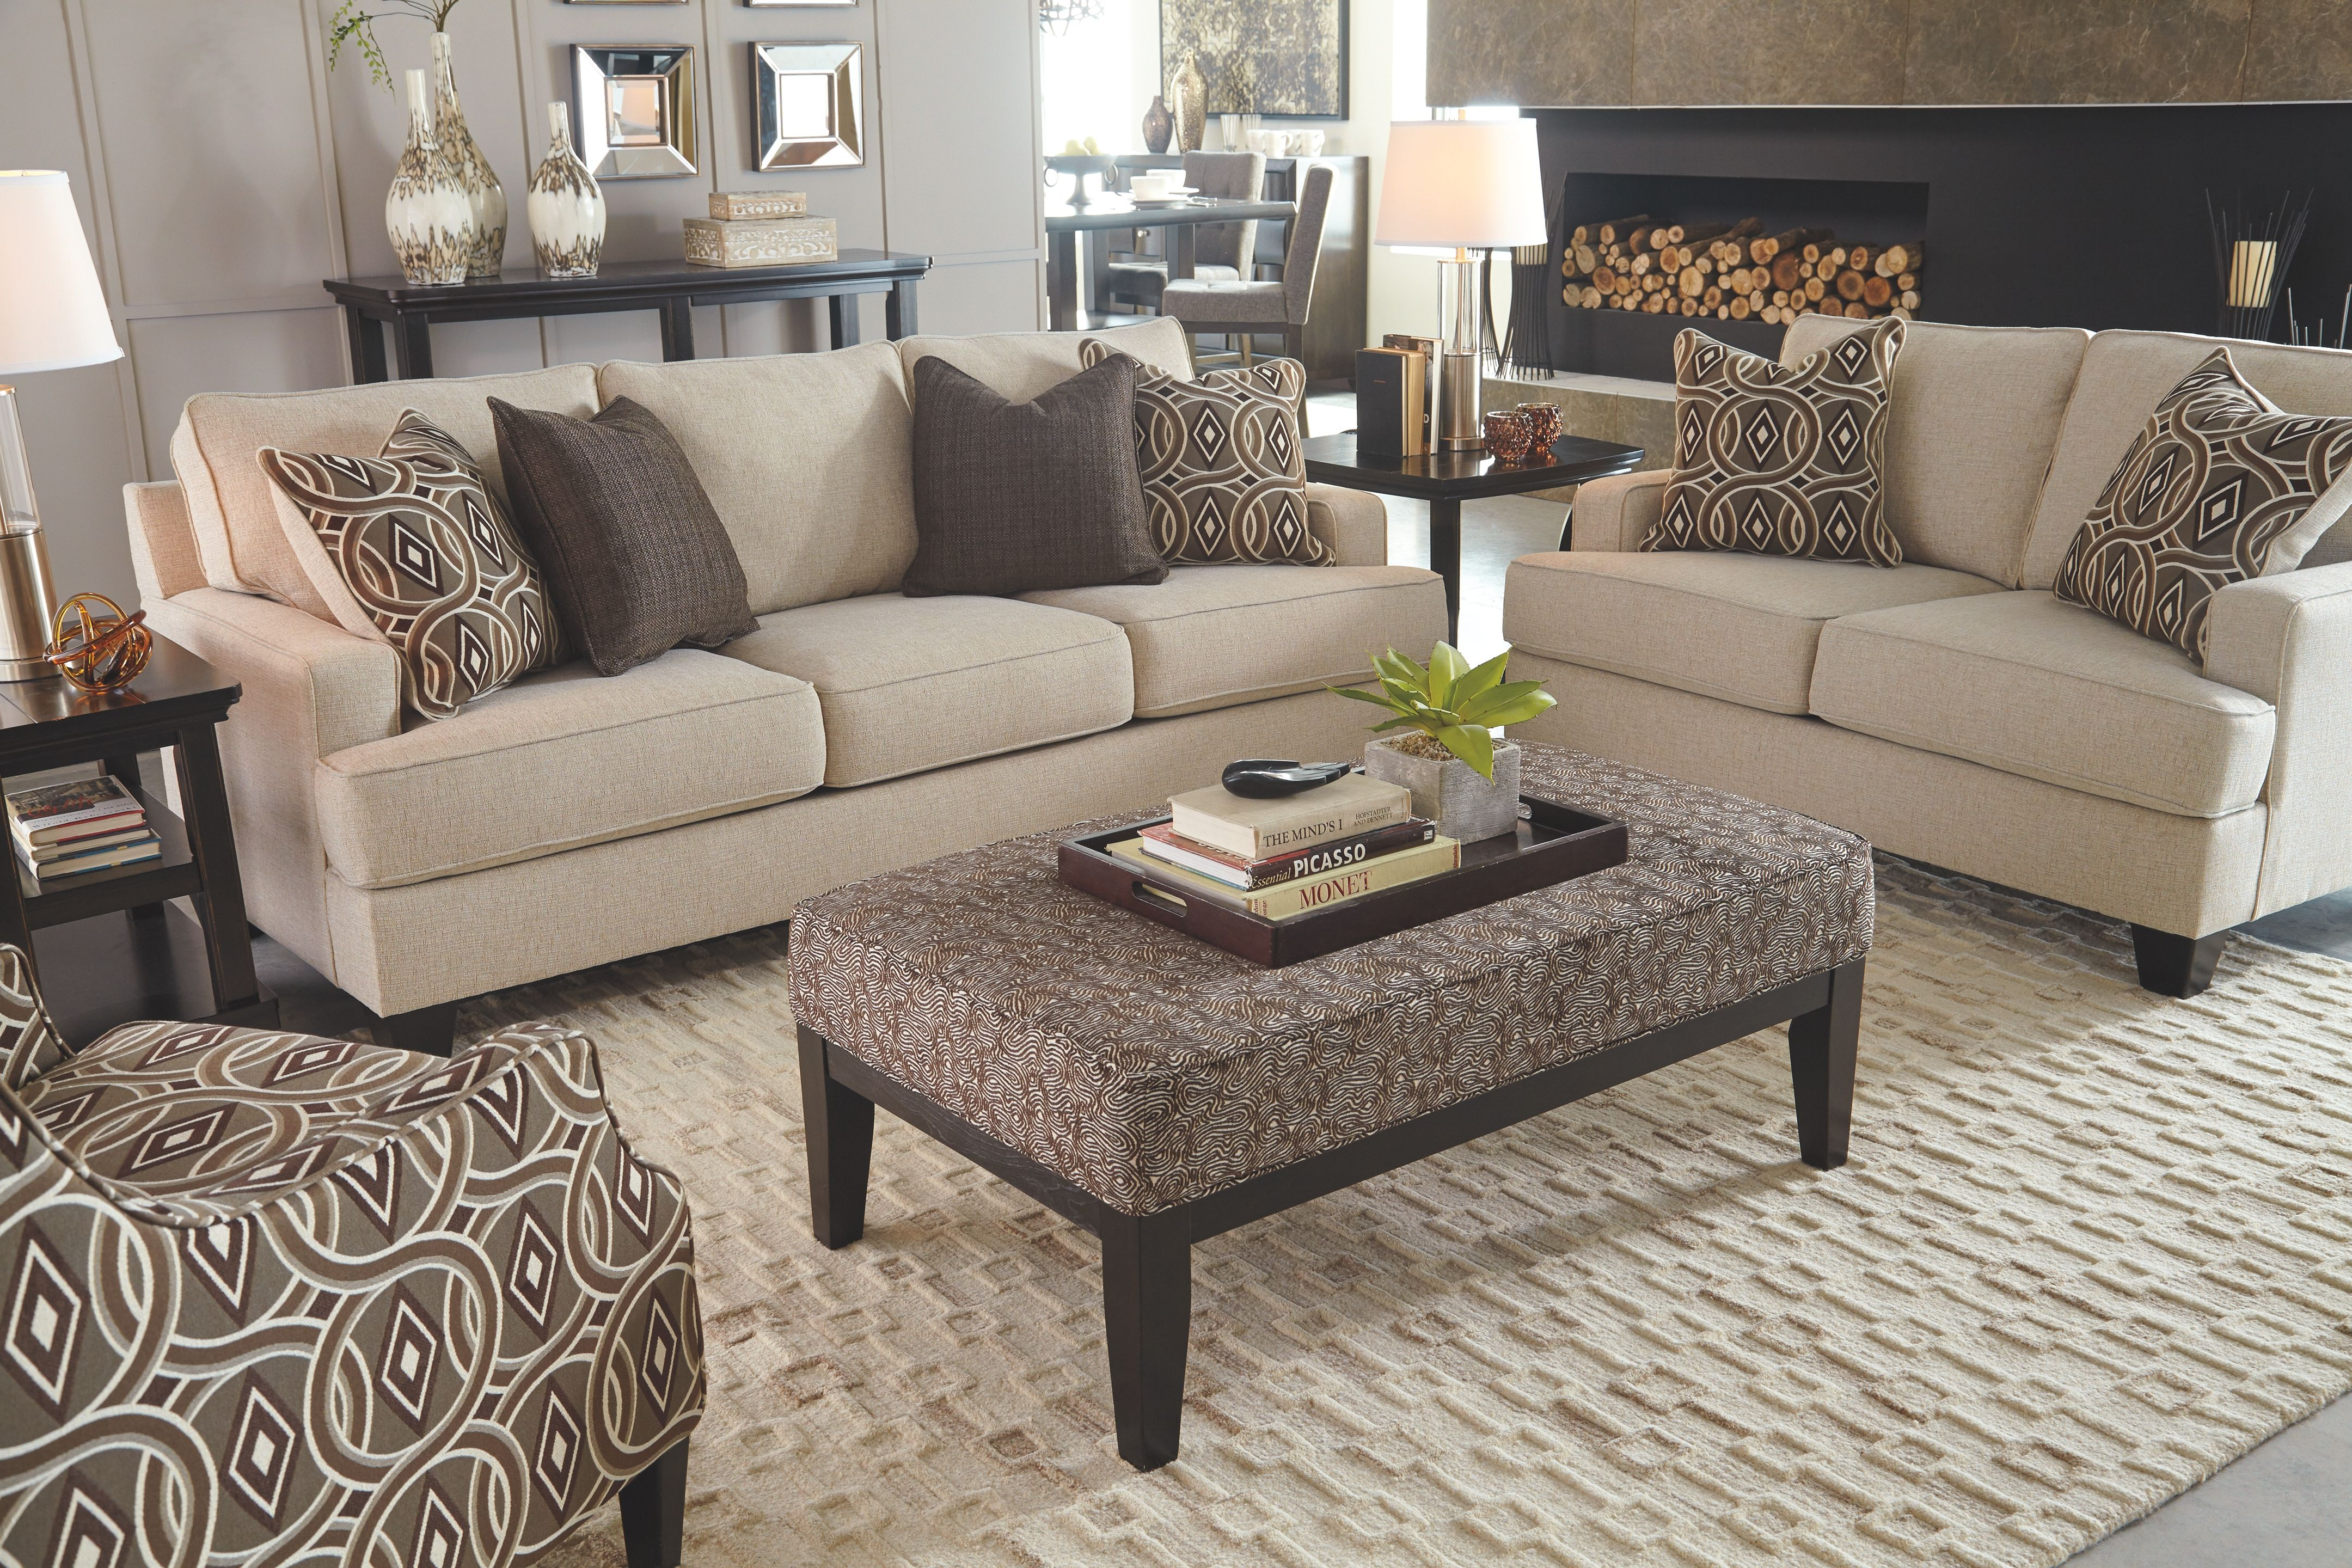 Bernat Sofa And Loveseat Linen Brown Living Room Couches Living Room Livingroom Layout